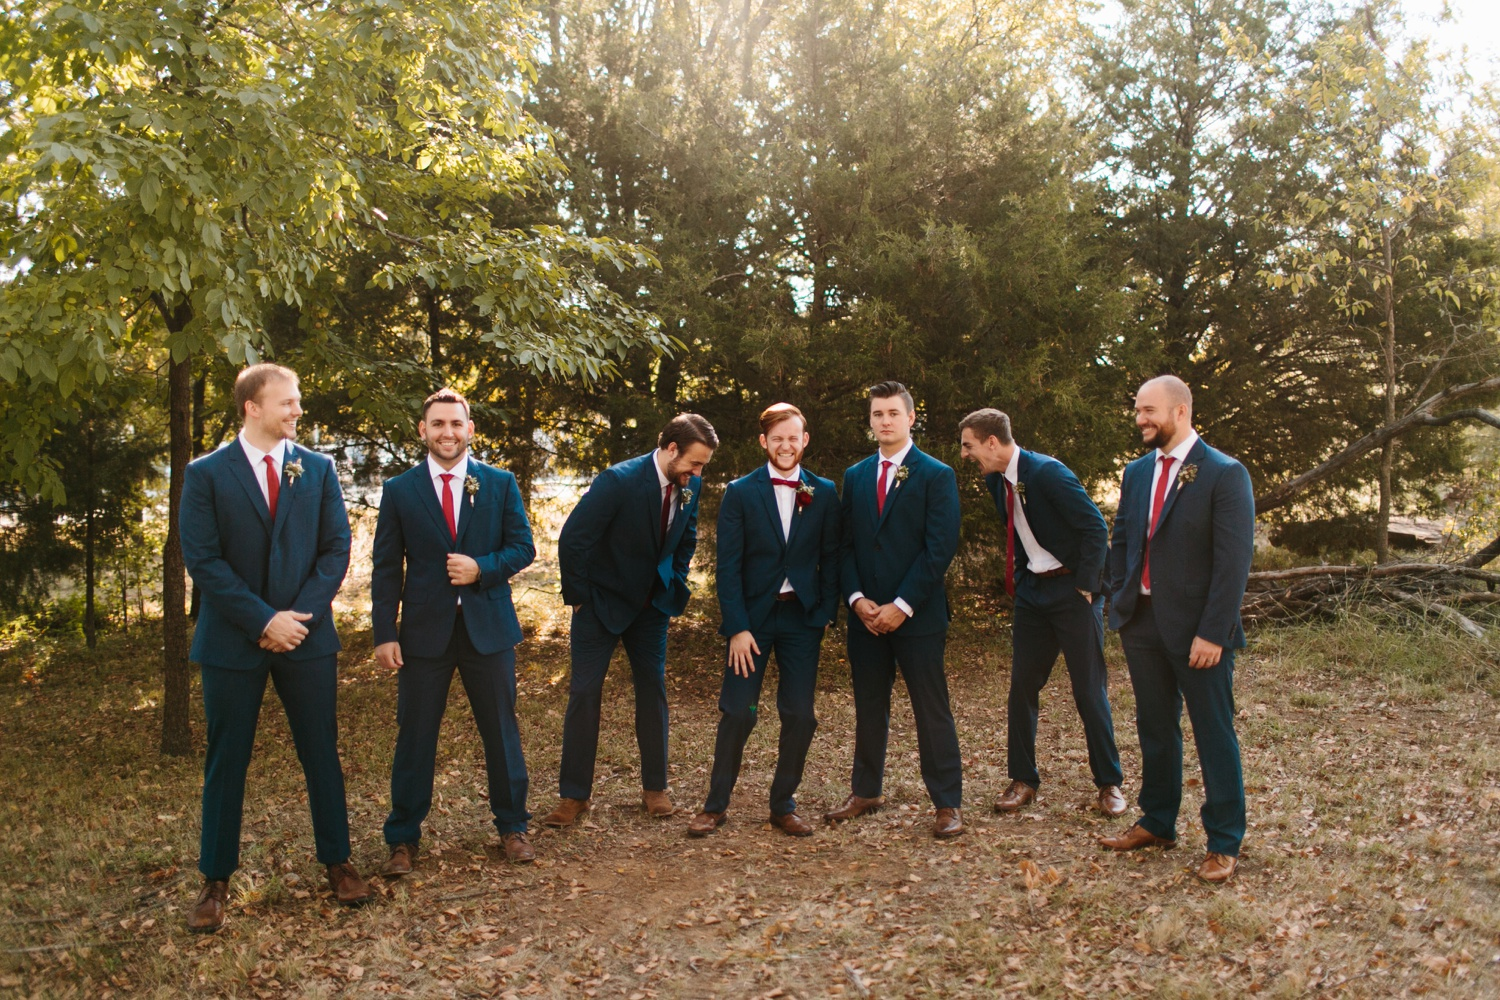 Grant + Lysette | a vibrant, deep burgundy and navy, and mixed metals wedding at Hidden Pines Chapel by North Texas Wedding Photographer Rachel Meagan Photography 028